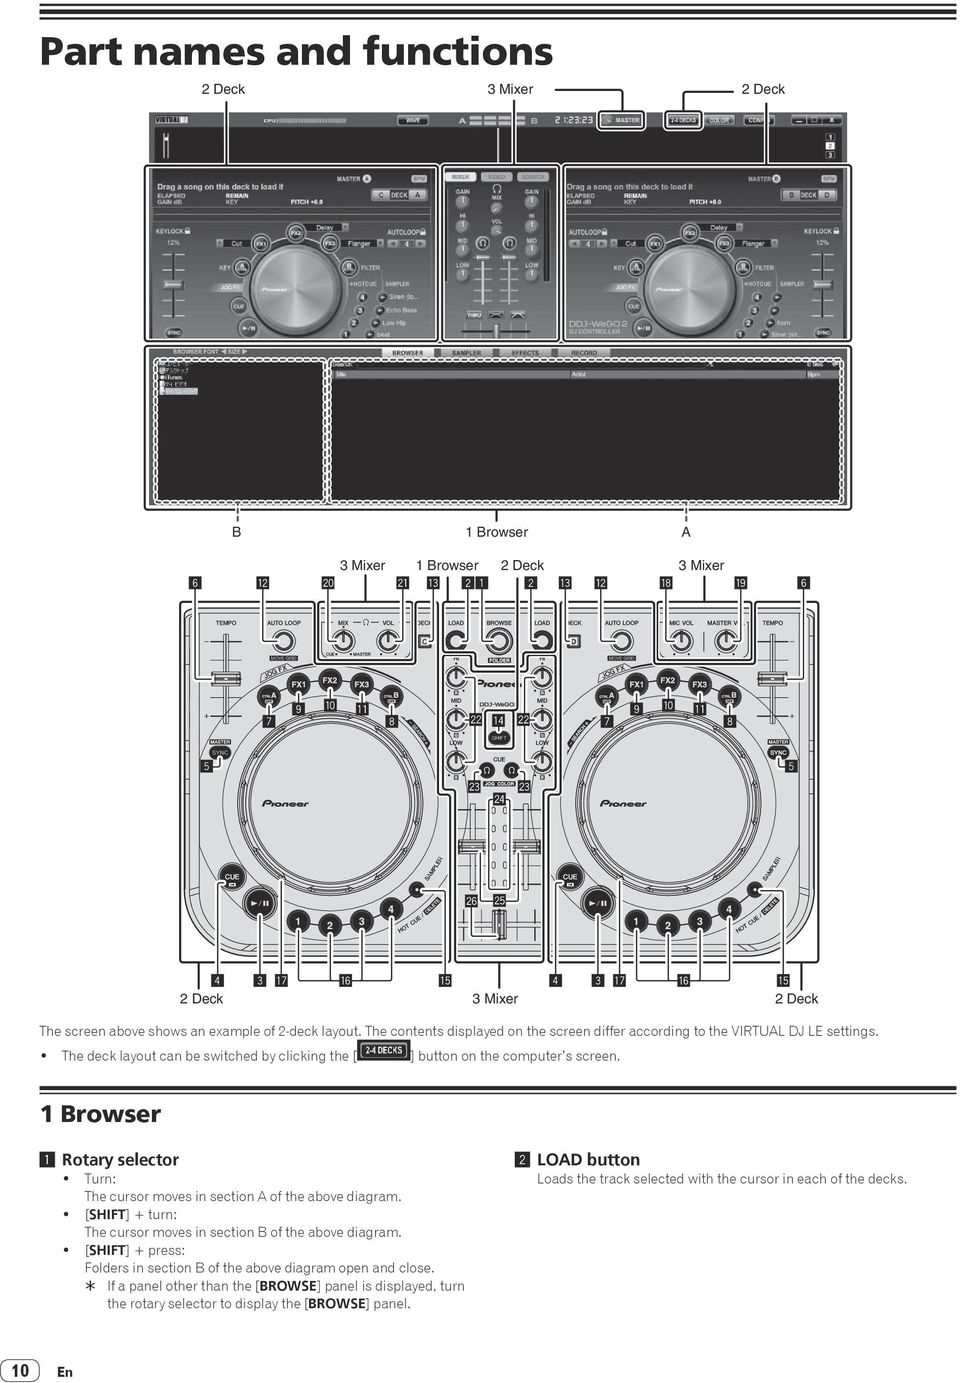 ! The deck layout can be switched by clicking the [ ] button on the computer s screen. 1 Browser 1 Rotary selector! Turn: The cursor moves in section A of the above diagram.